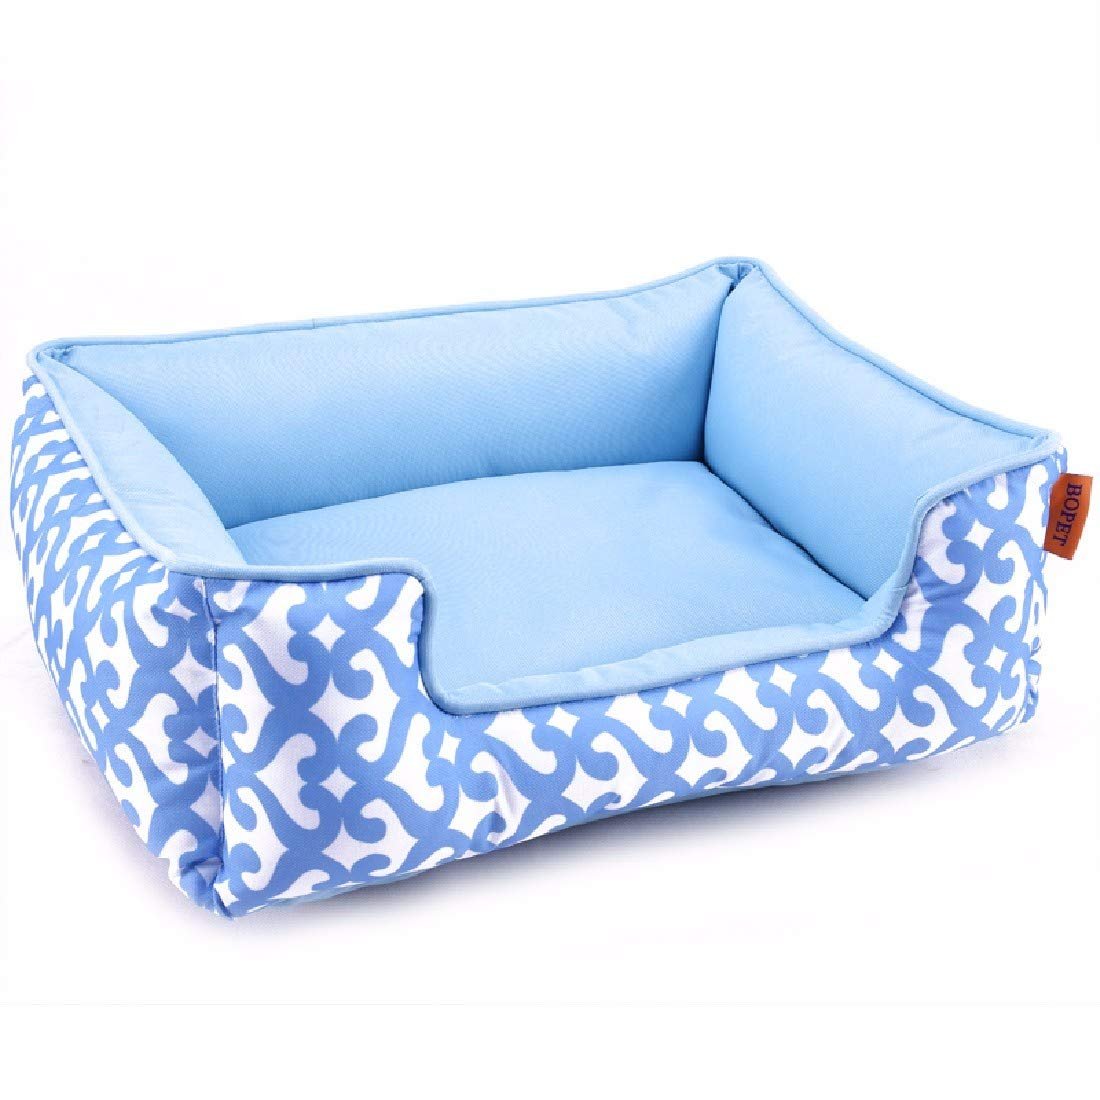 bluee S 48x40x18 bluee S 48x40x18 Pet Dog Cat House Bed Dog and cat Litter can be Cleaned and Washed Dog Kennel Small Kennel General Kennel,bluee,S 48x40x18